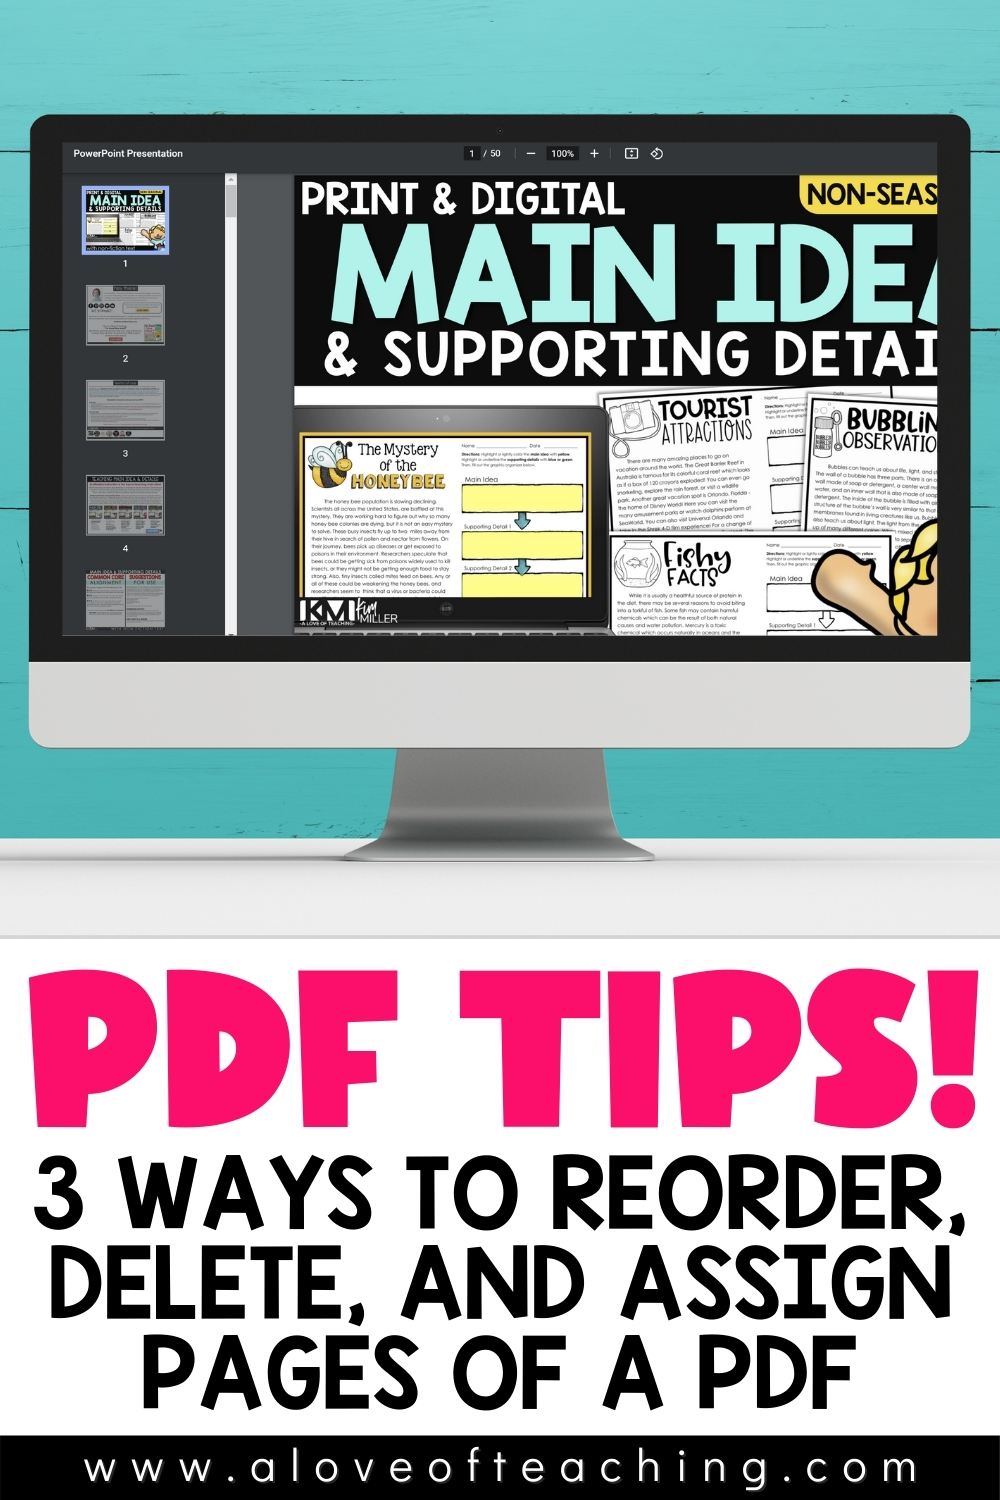 3 Ways to Reorder, Delete, and Assign Pages of a PDF